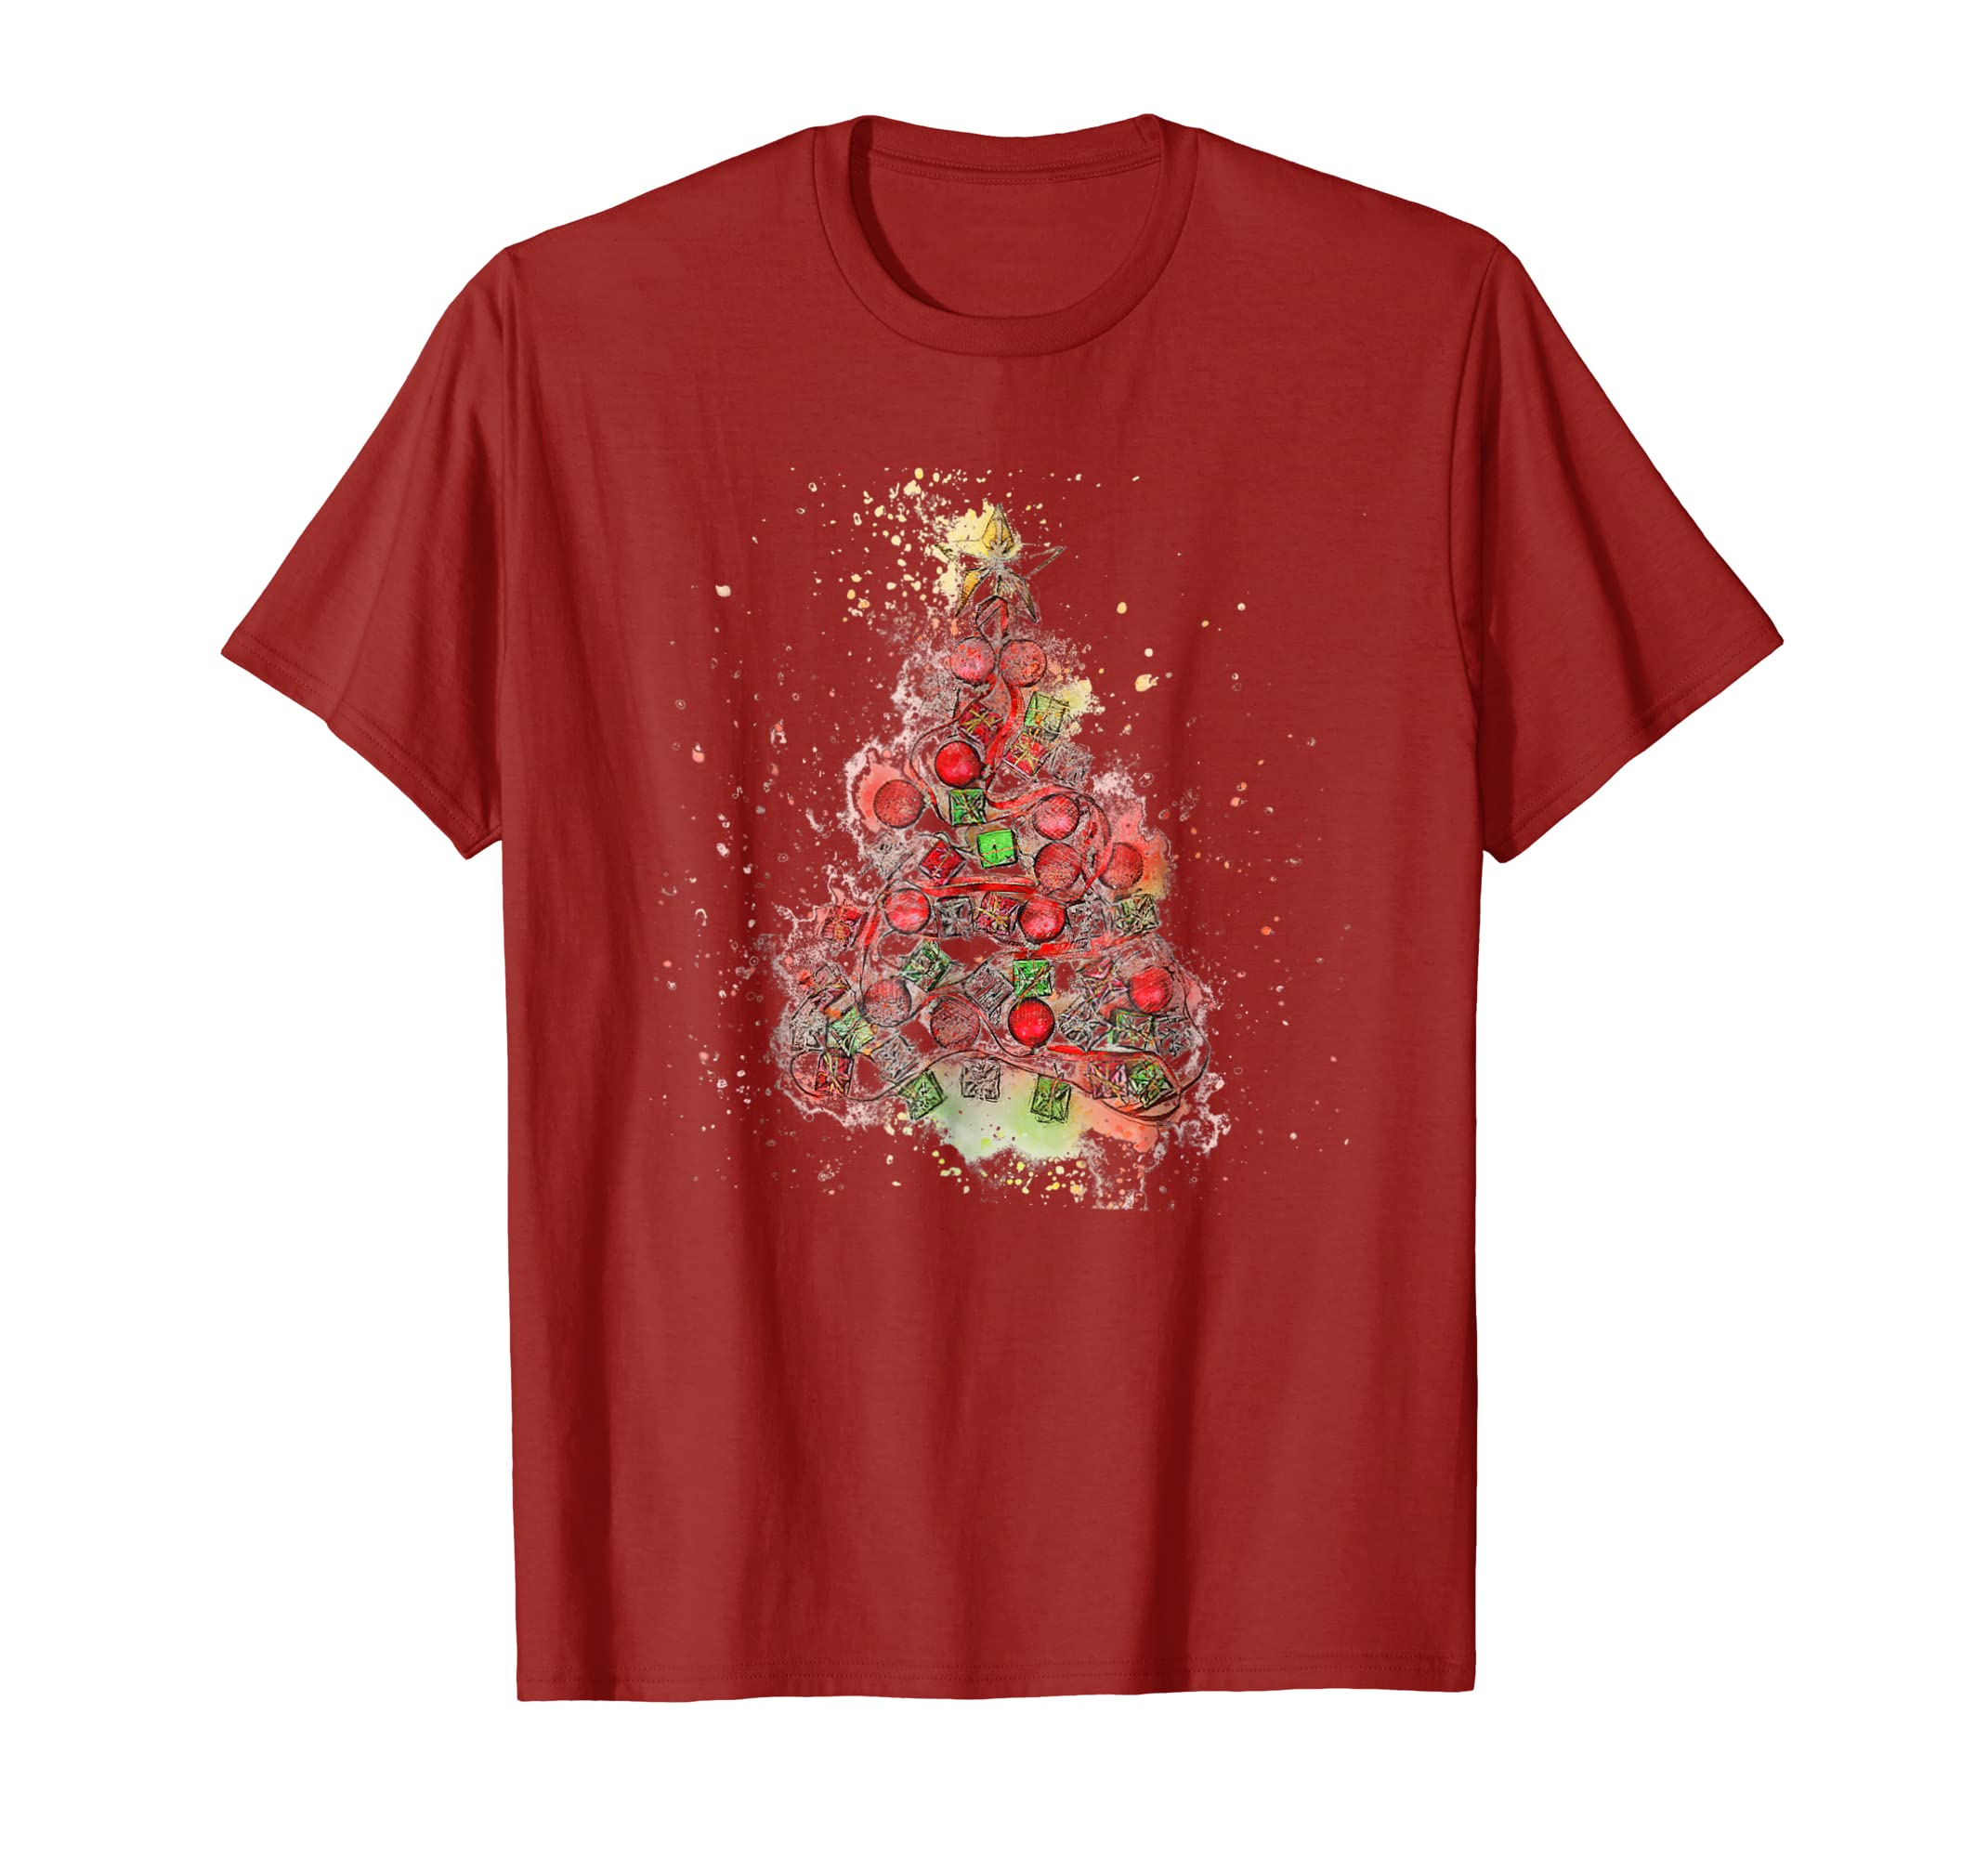 Christmas Tree Holiday Shirt Vintage Design Men Women Kids-azvn